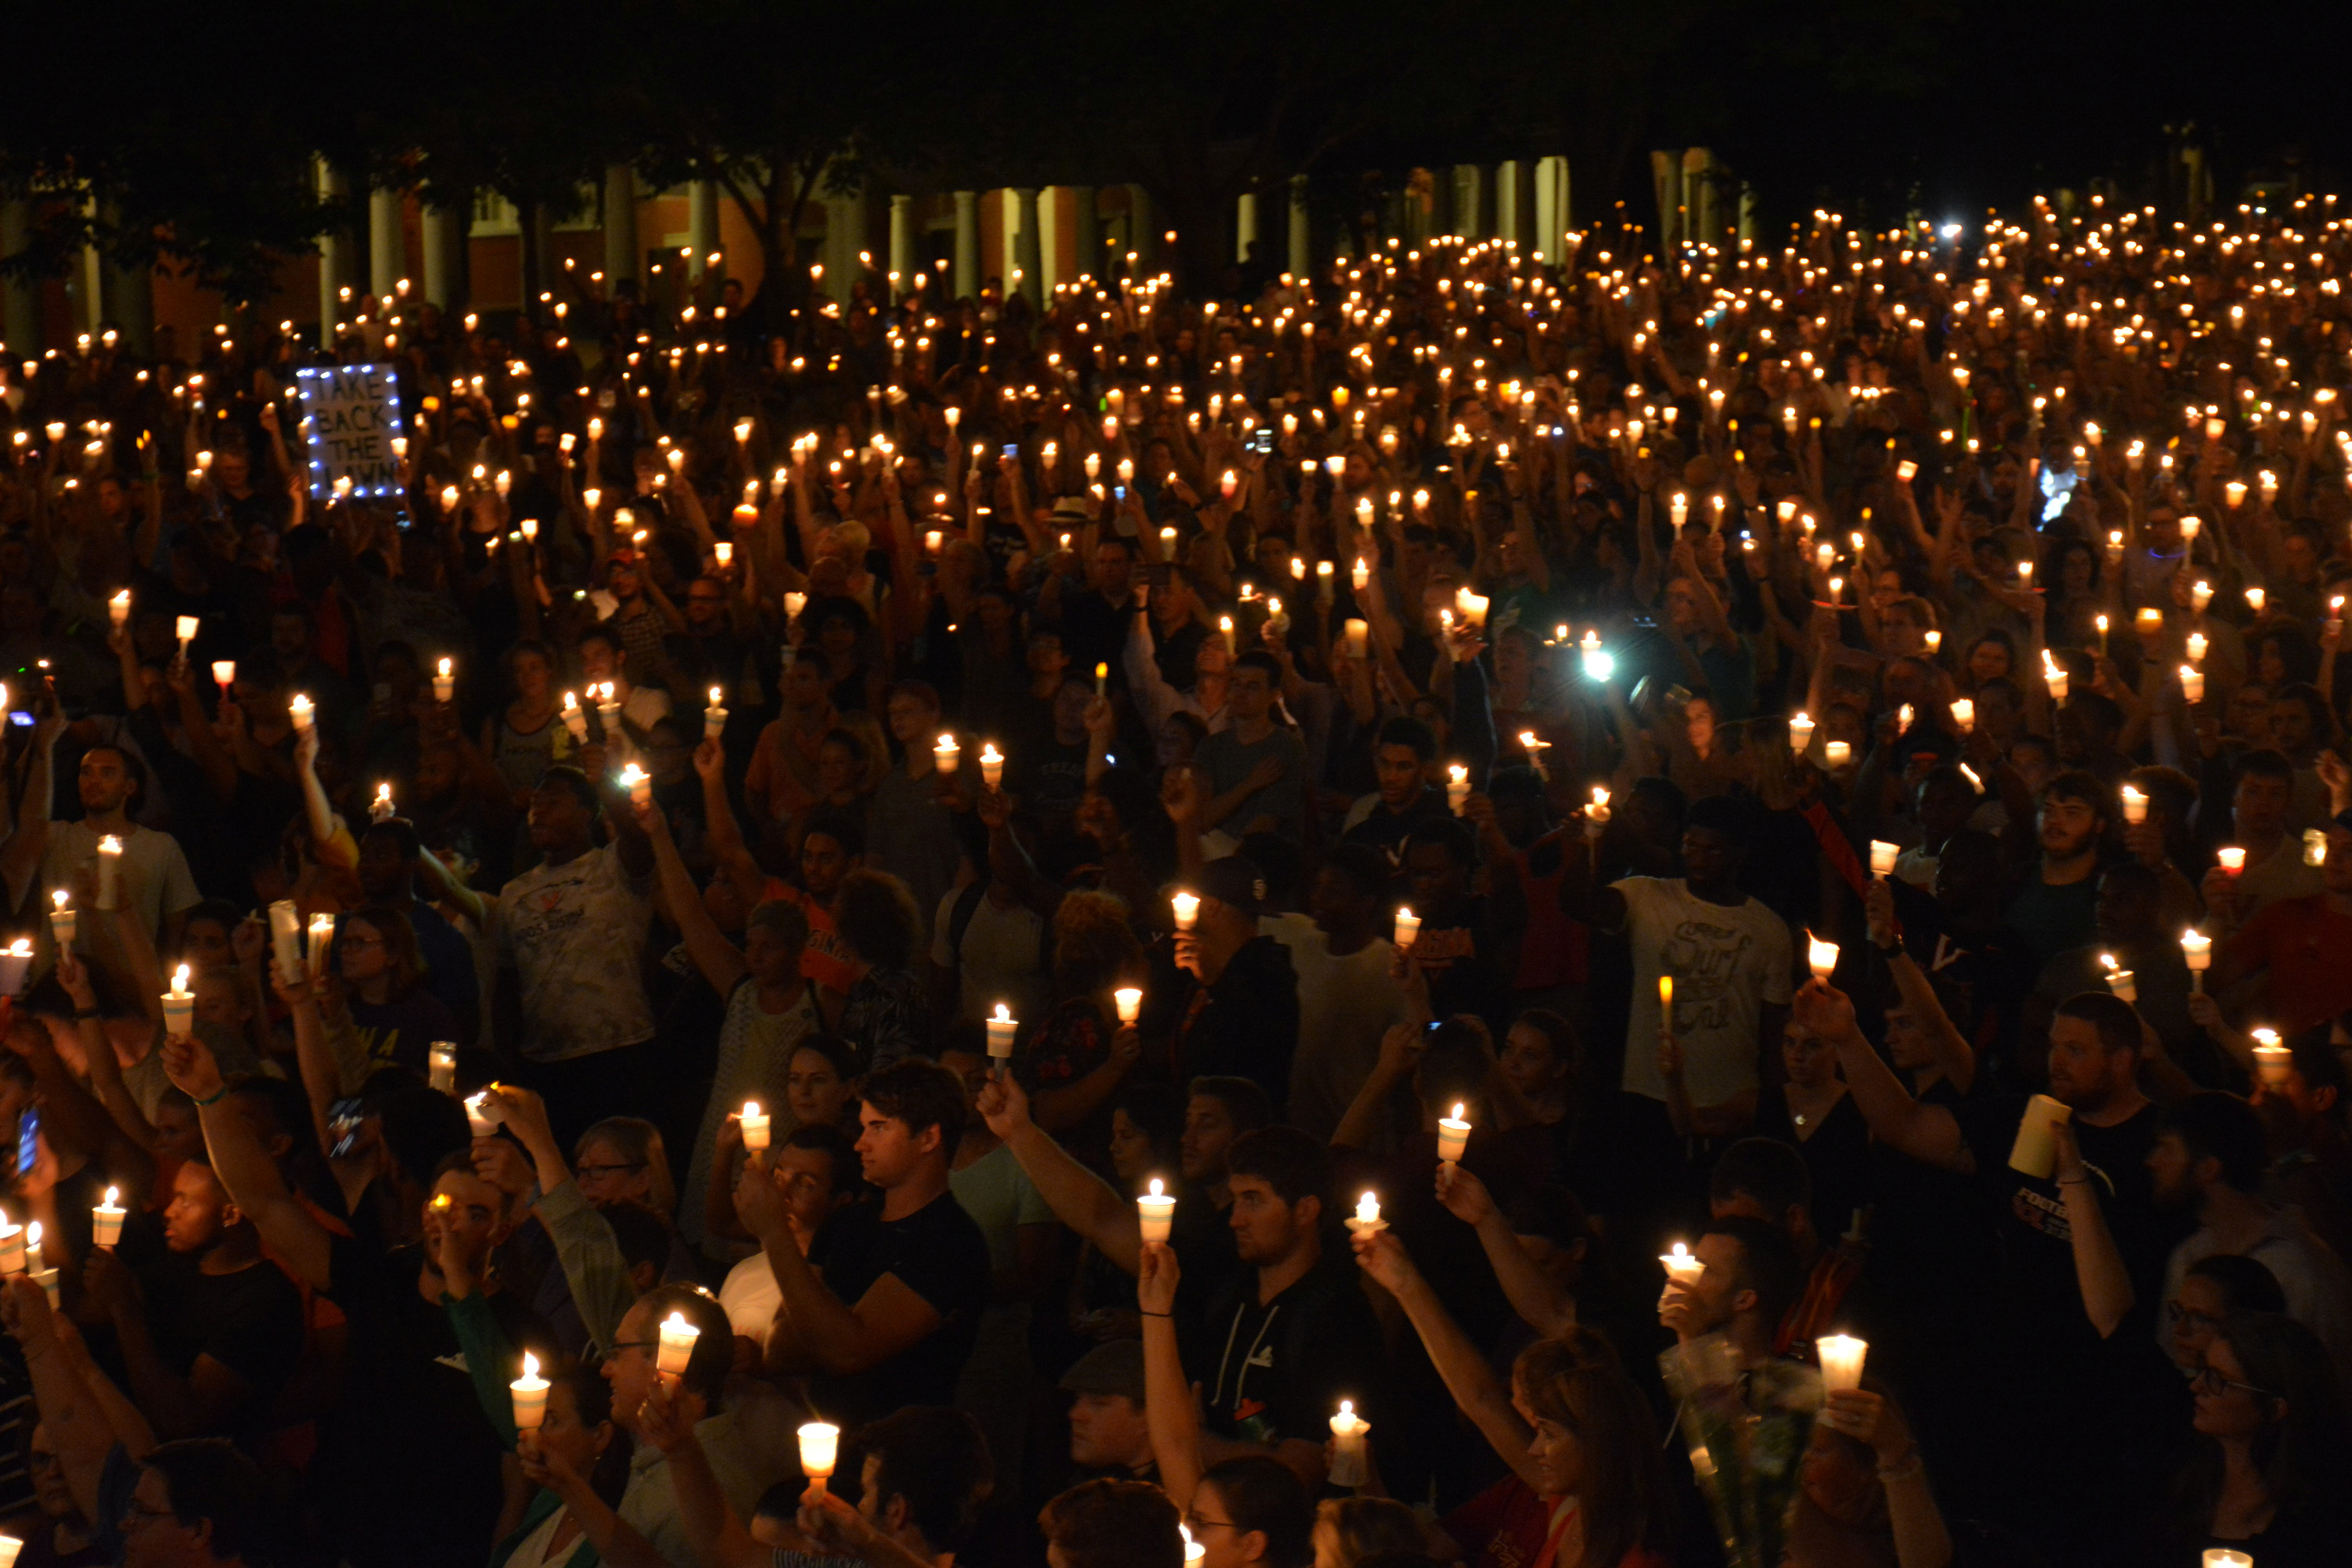 Members of the Charlottesville community hold a vigil for Heather Heyer following last Saturday's protest organized by white nationalists that turned deadly at the University of Virginia in Charlottesville, Virginia, U.S. on August 16, 2017. Picture taken on August 16, 2017.   Courtesy Tim Dodson/The Cavalier Daily/Handout via REUTERS   ATTENTION EDITORS - THIS IMAGE WAS PROVIDED BY A THIRD PARTY. MANDATORY CREDIT. - RC1AE091ECB0